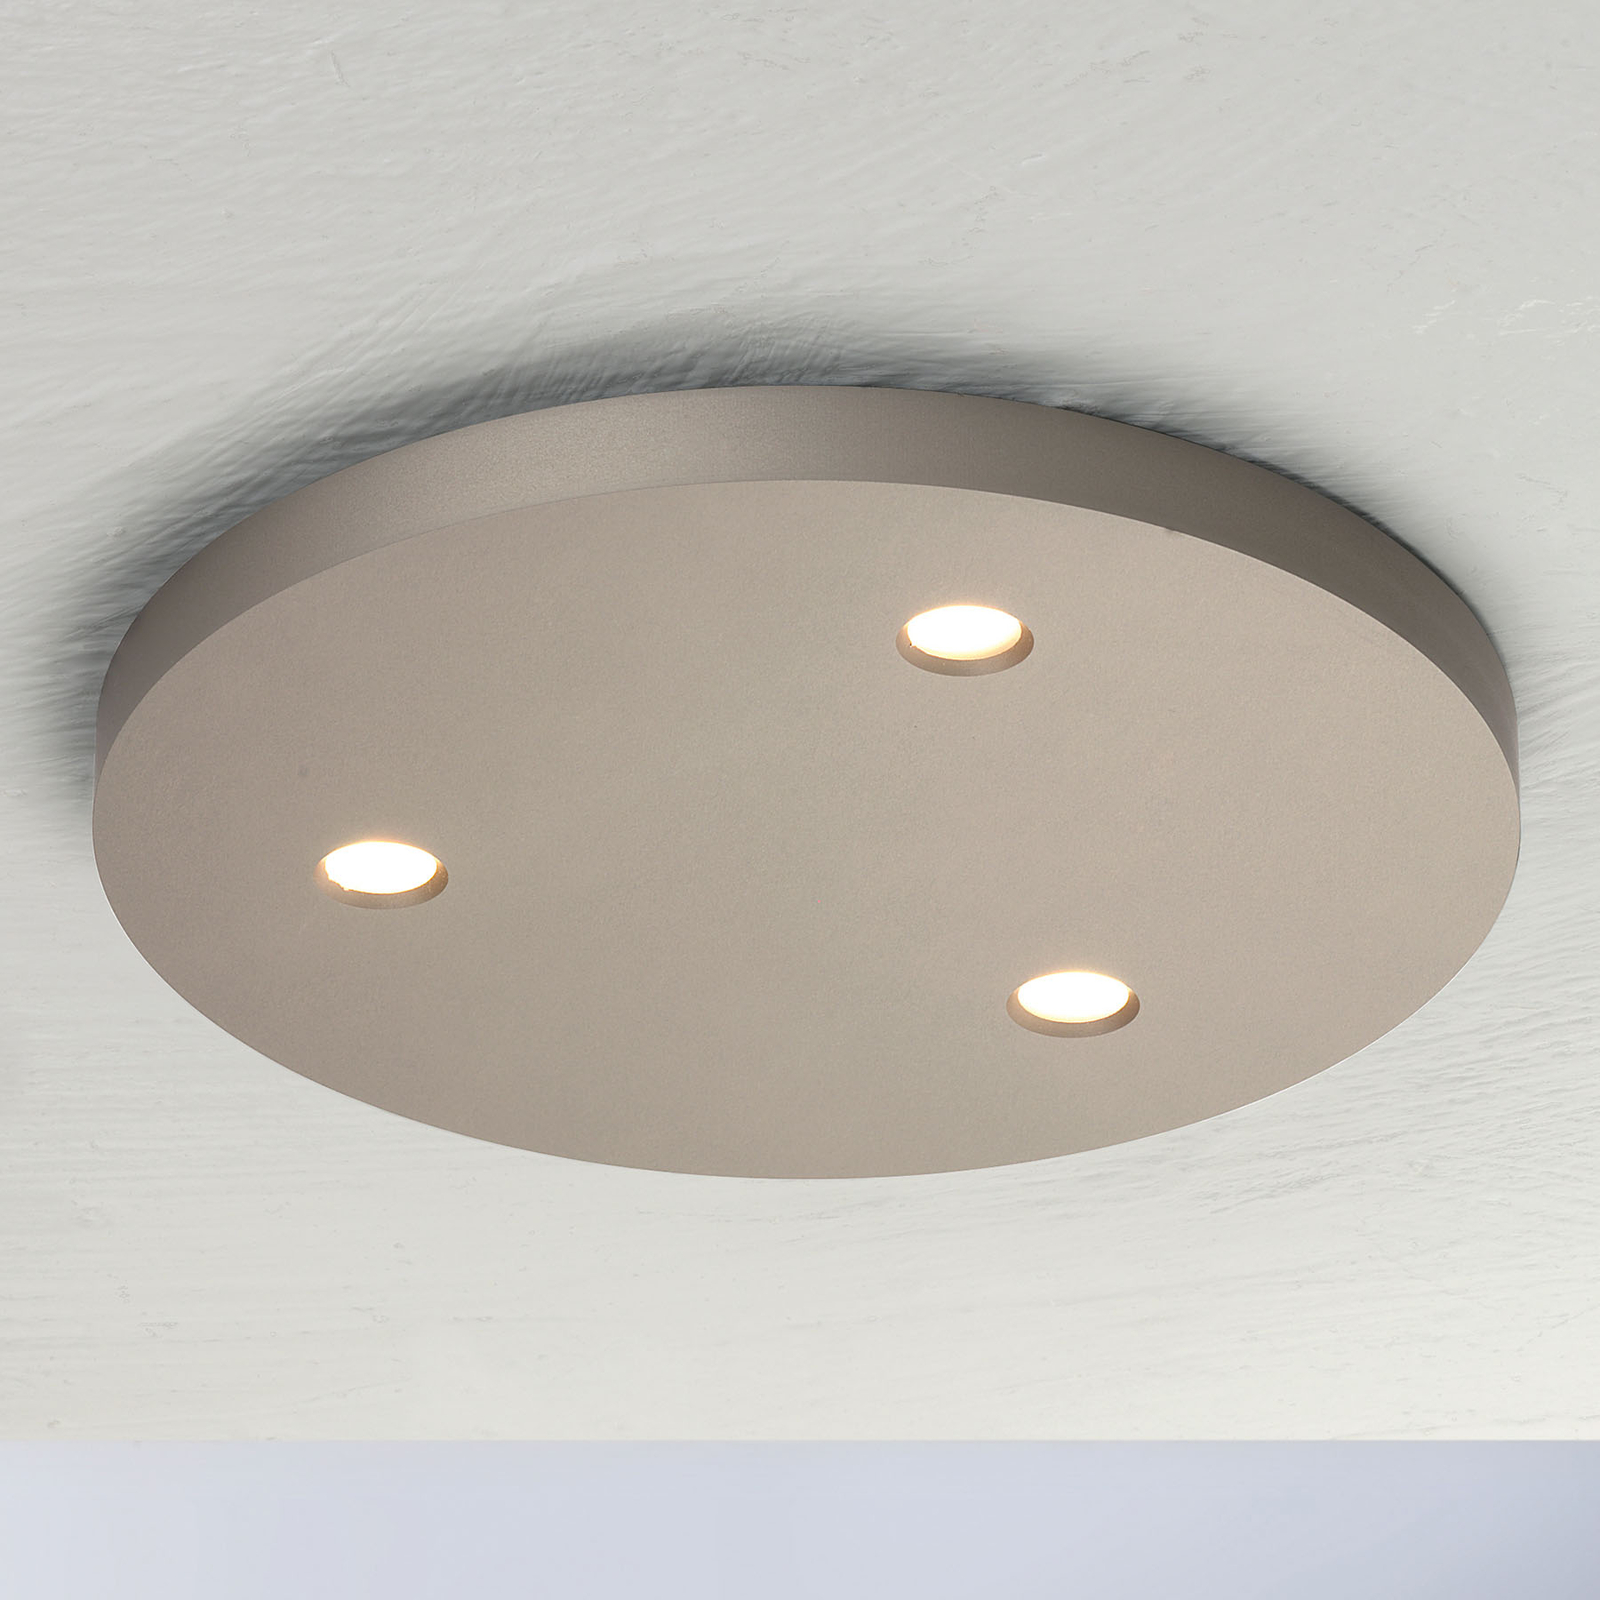 Bopp Close LED plafondlamp 3-lamps rond taupe